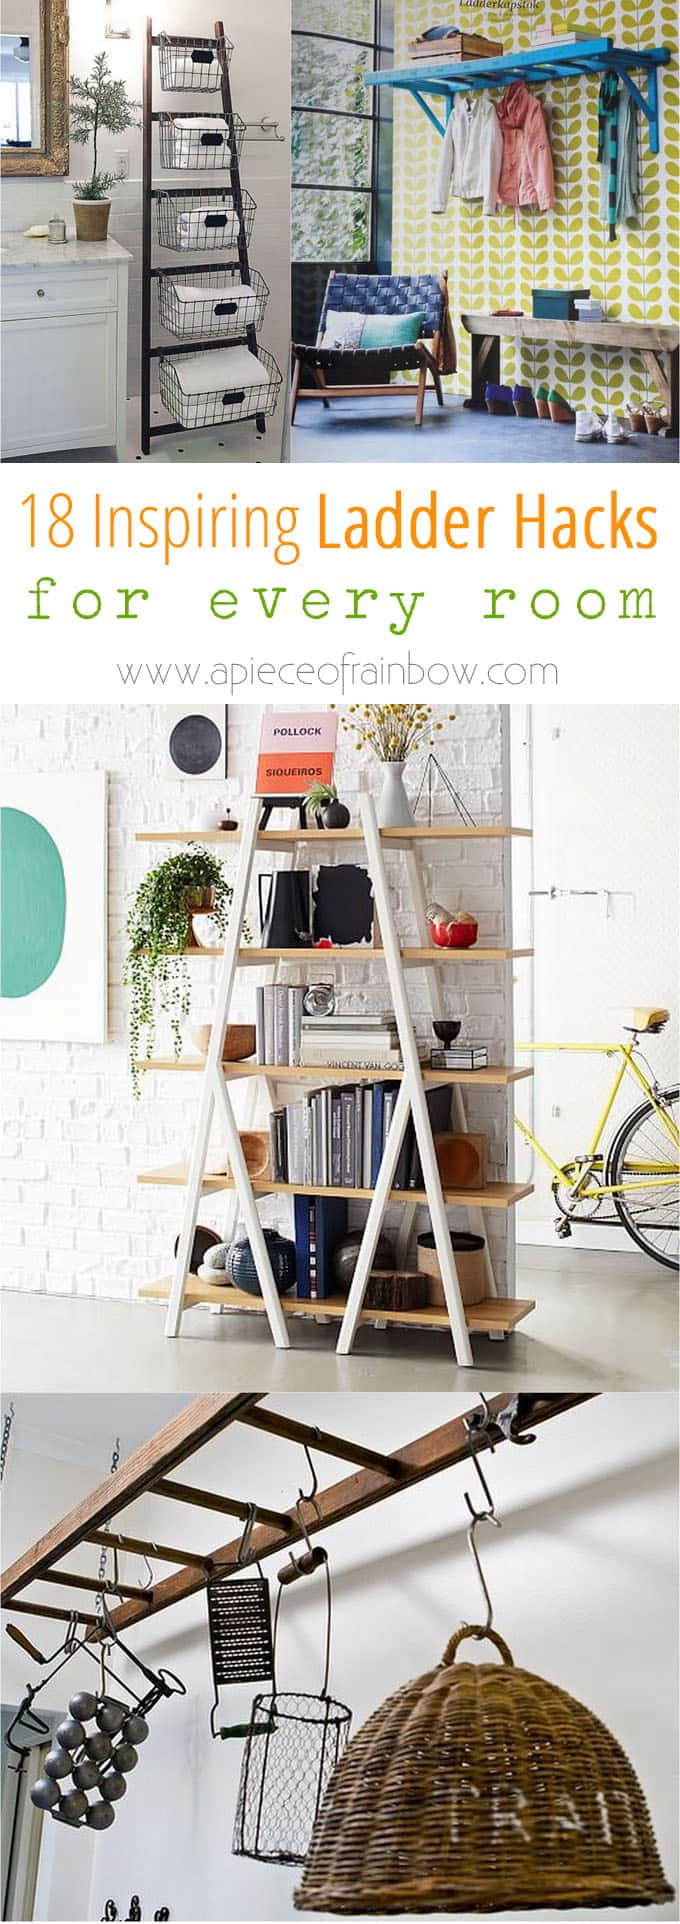 modern farmhouse style home decor ideas using ladders